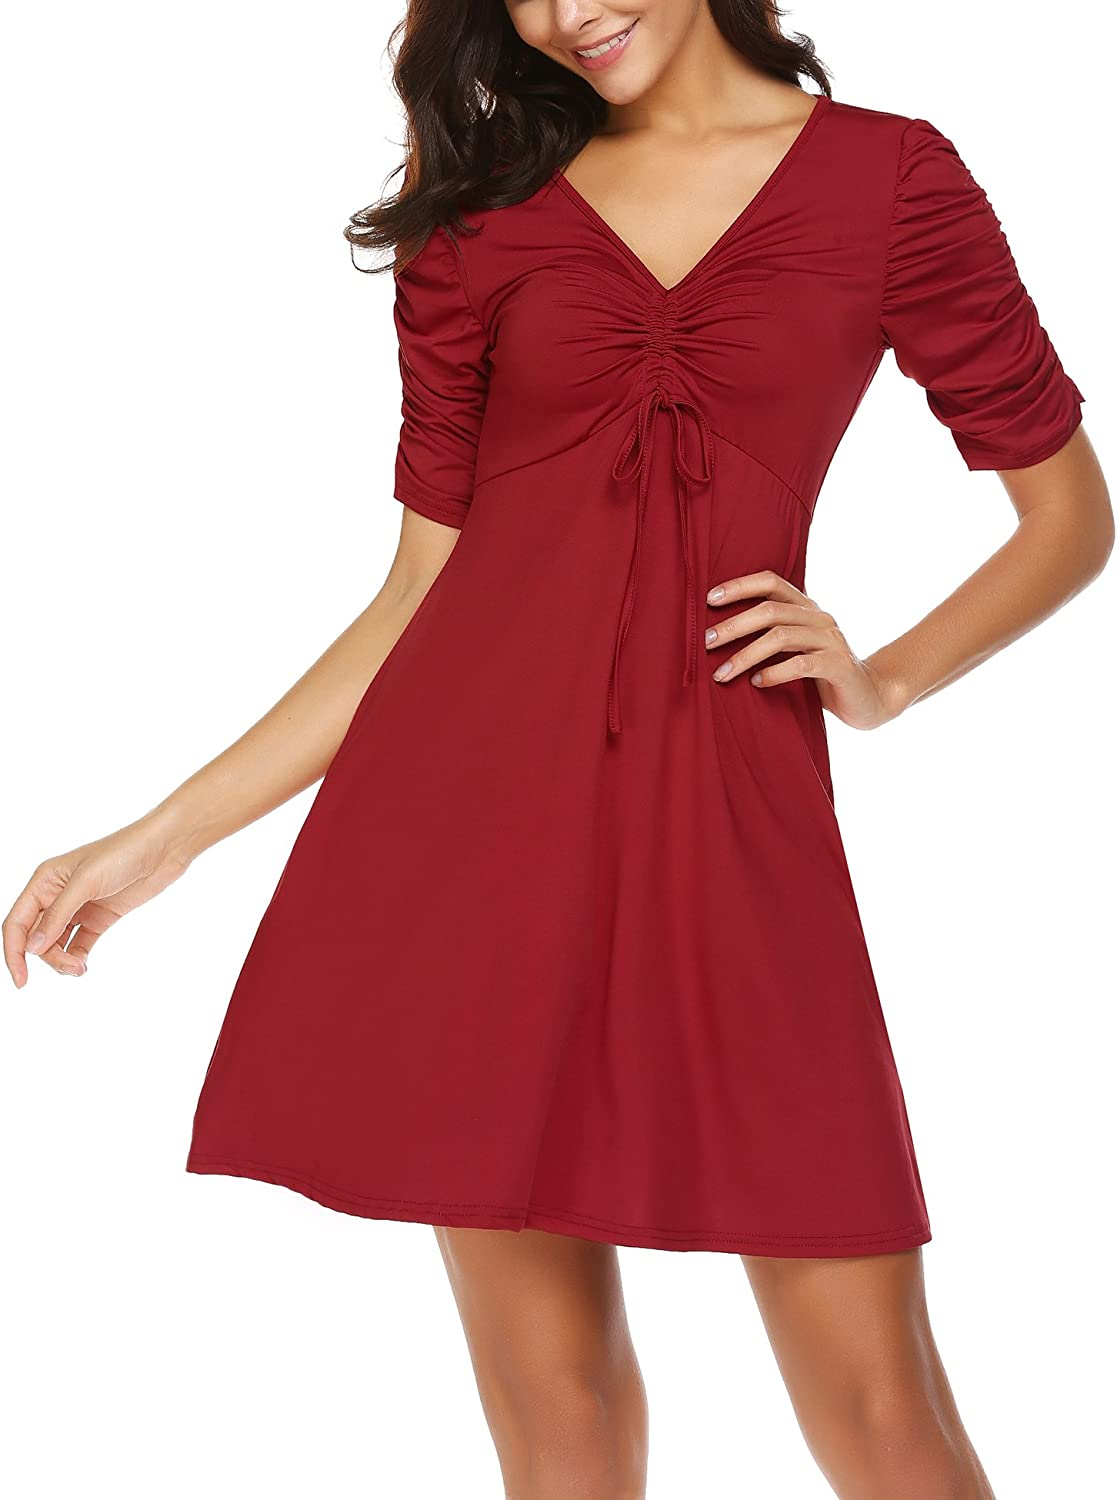 Hersife Womens V Neck Ruched Sleeves Short Dress Solid Flare Aline Casual Dress